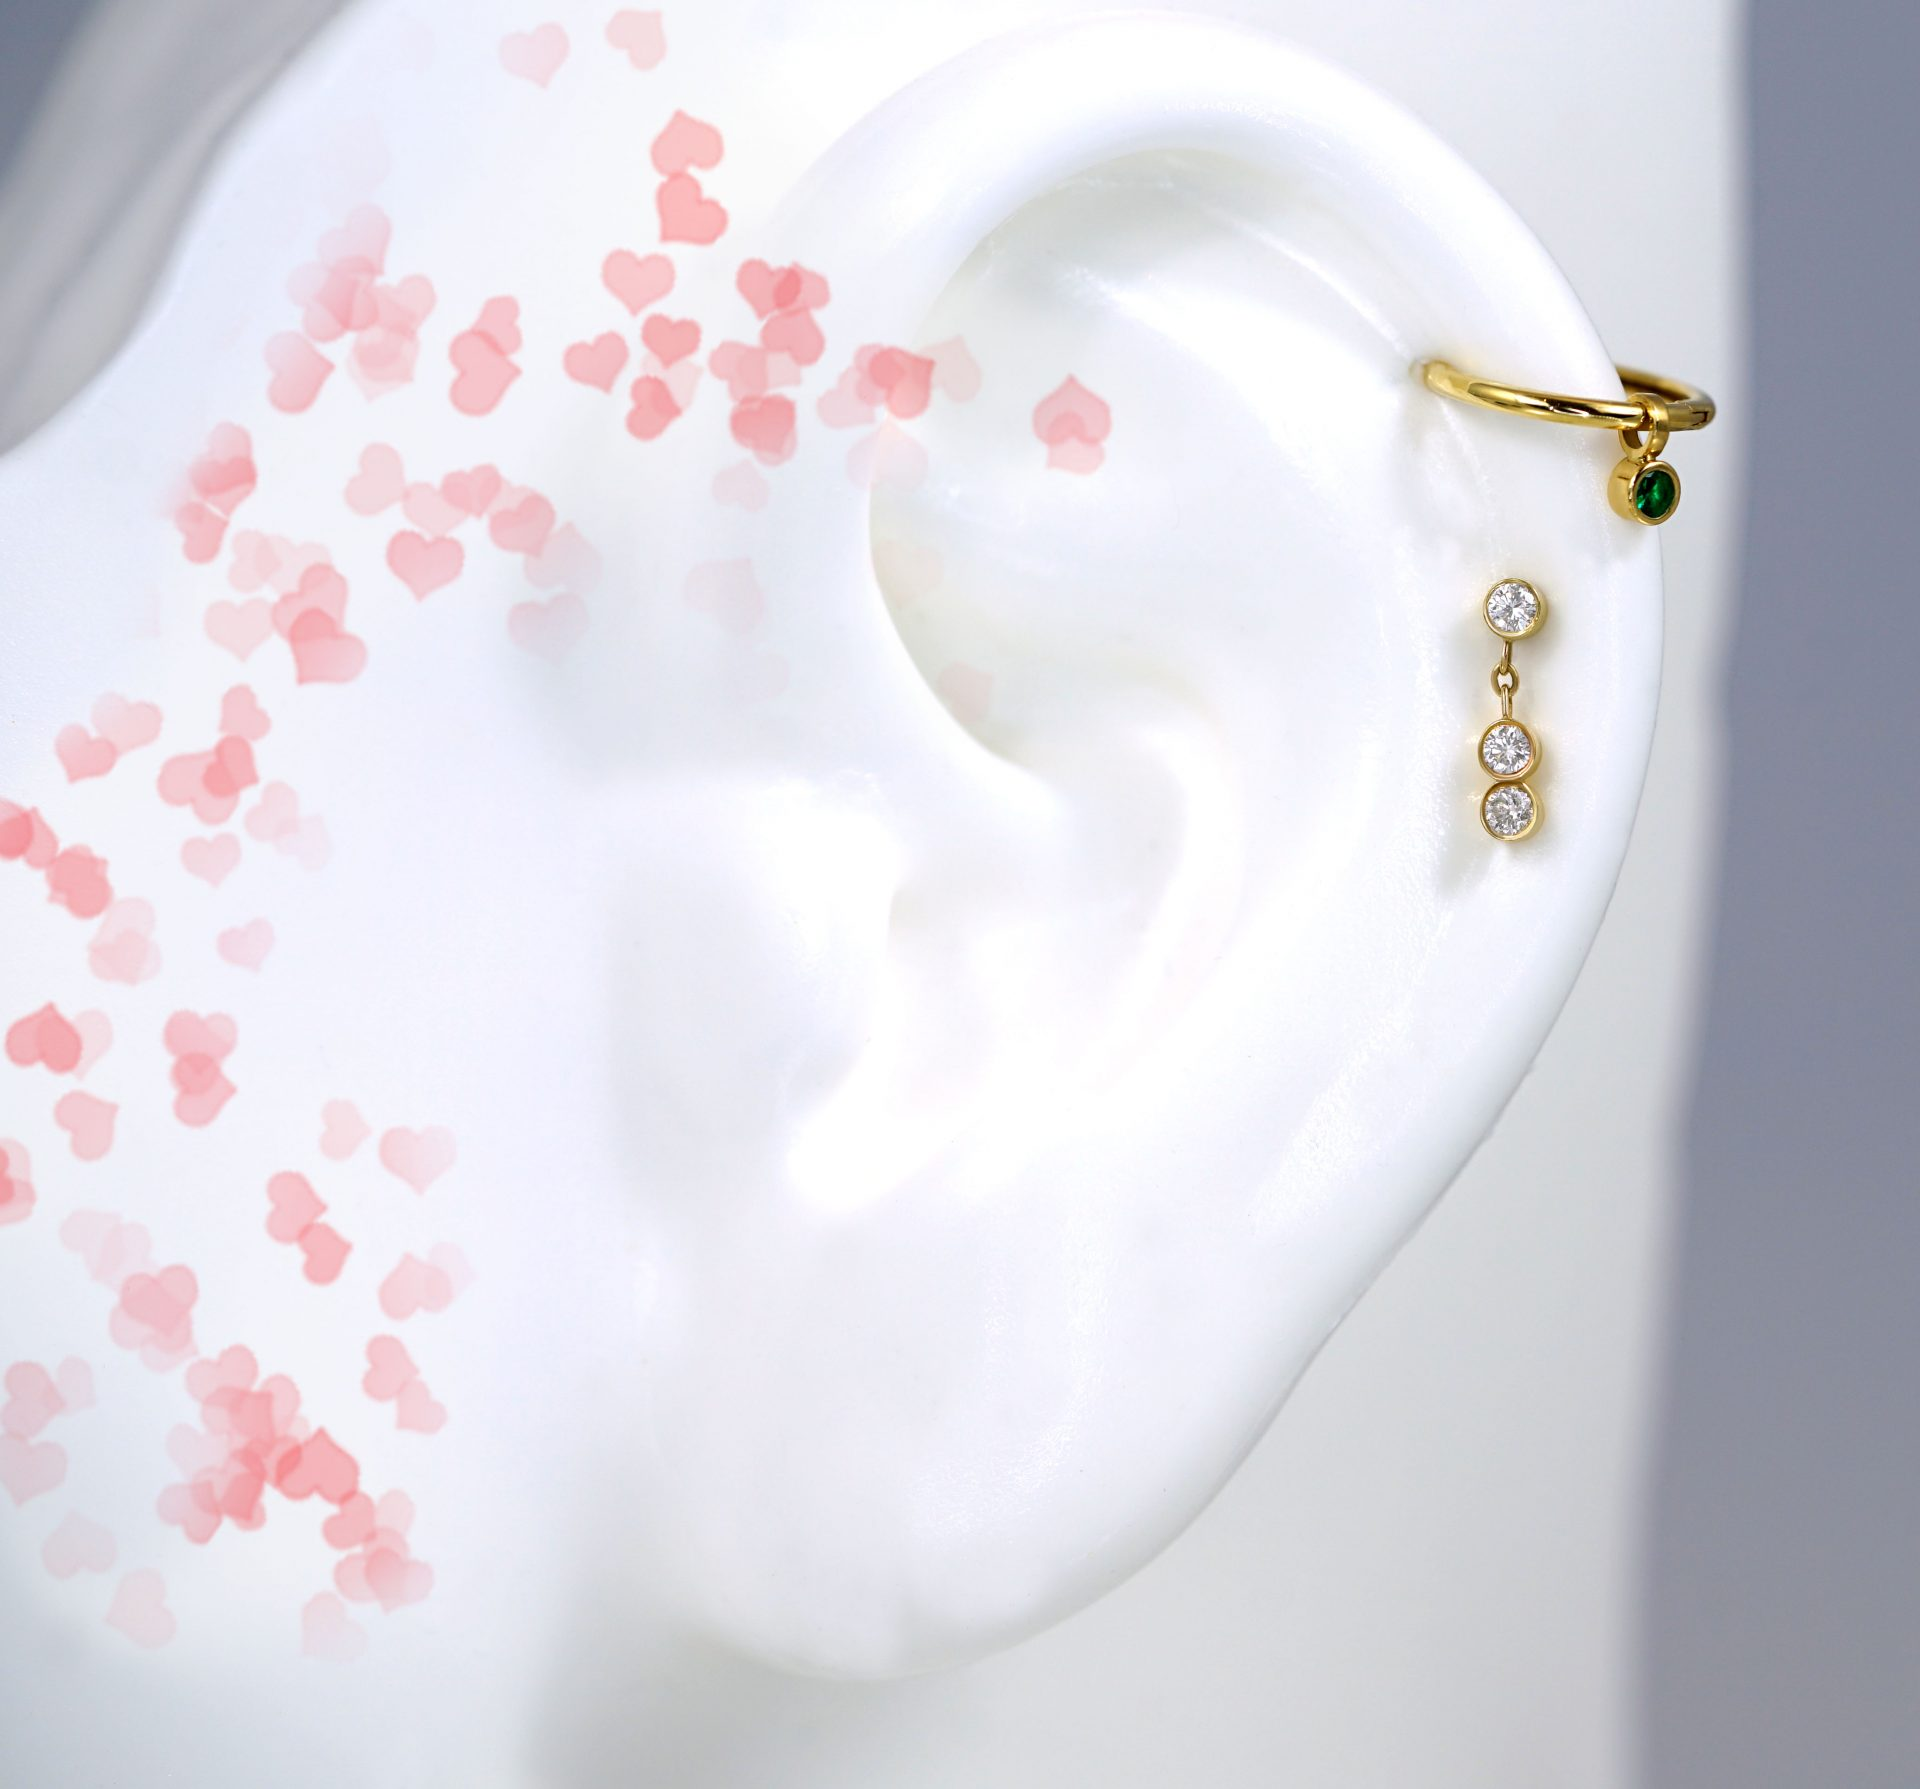 What-is-the-best-gift-for-a-girl-on-Valentine's-Day-Multi-Buy-Option-for-18k-Gold-Handcrafted-Luxury-Piercing-Earrings